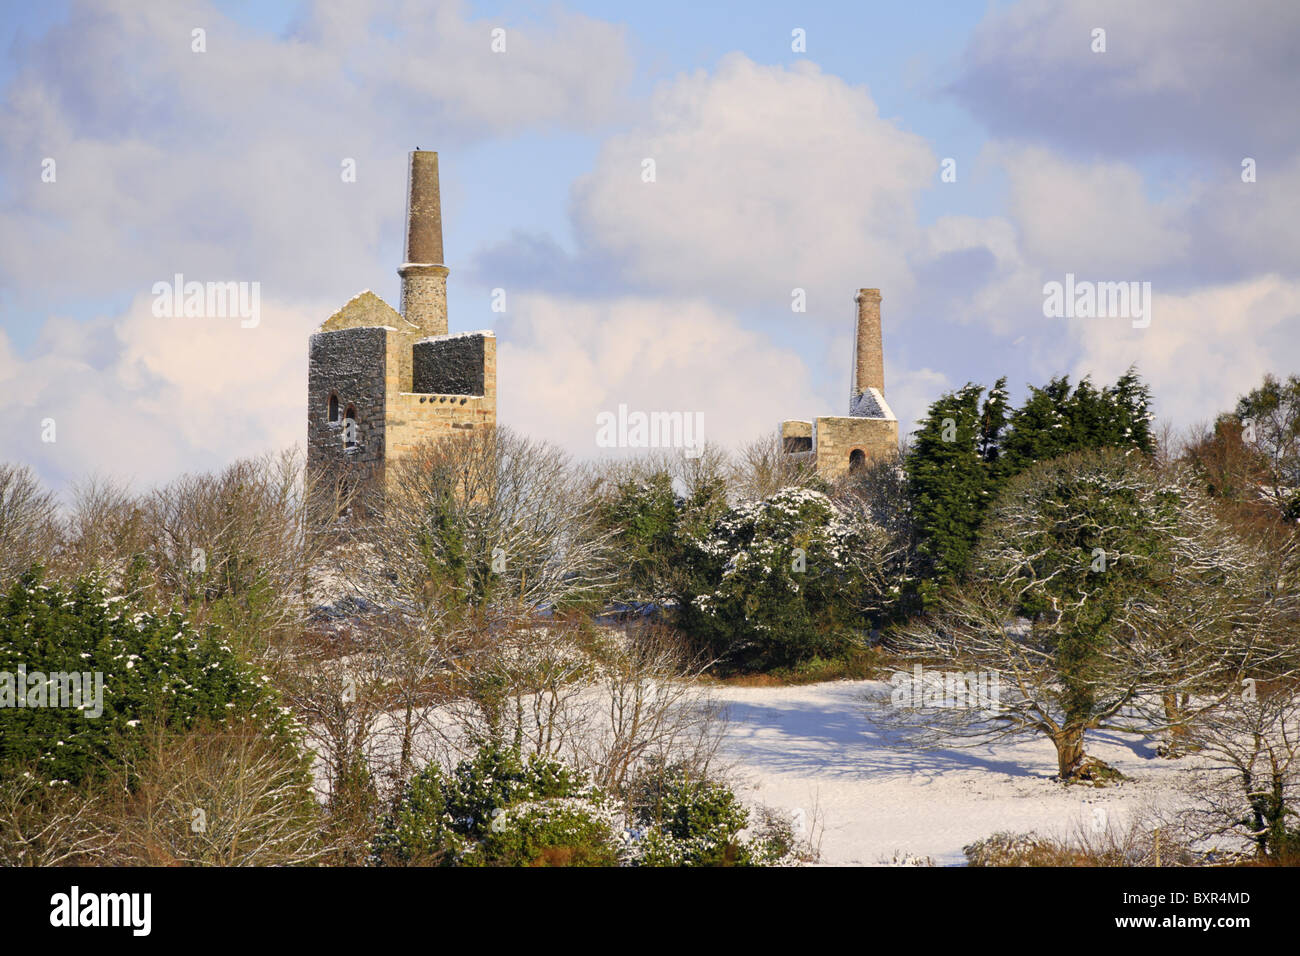 WHEAL BUSH ENGINE HOUSES CAPTURED IN THE SNOW - Stock Image